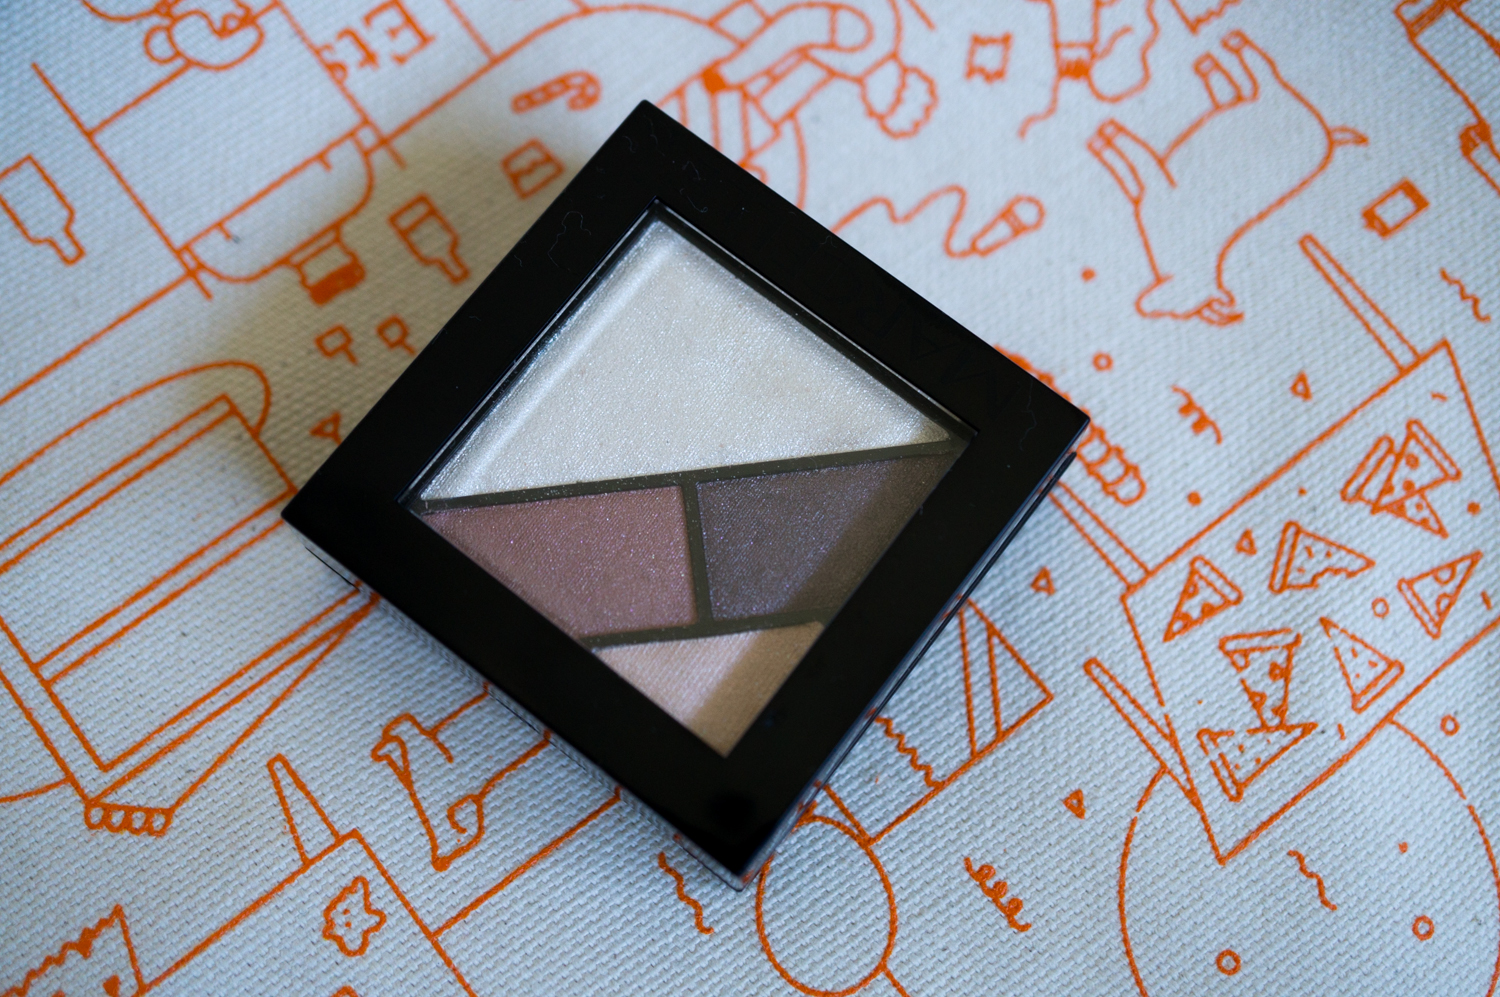 On The Eyes: Marcelle Eye Shadow Trio+ in Smoky Chestnut